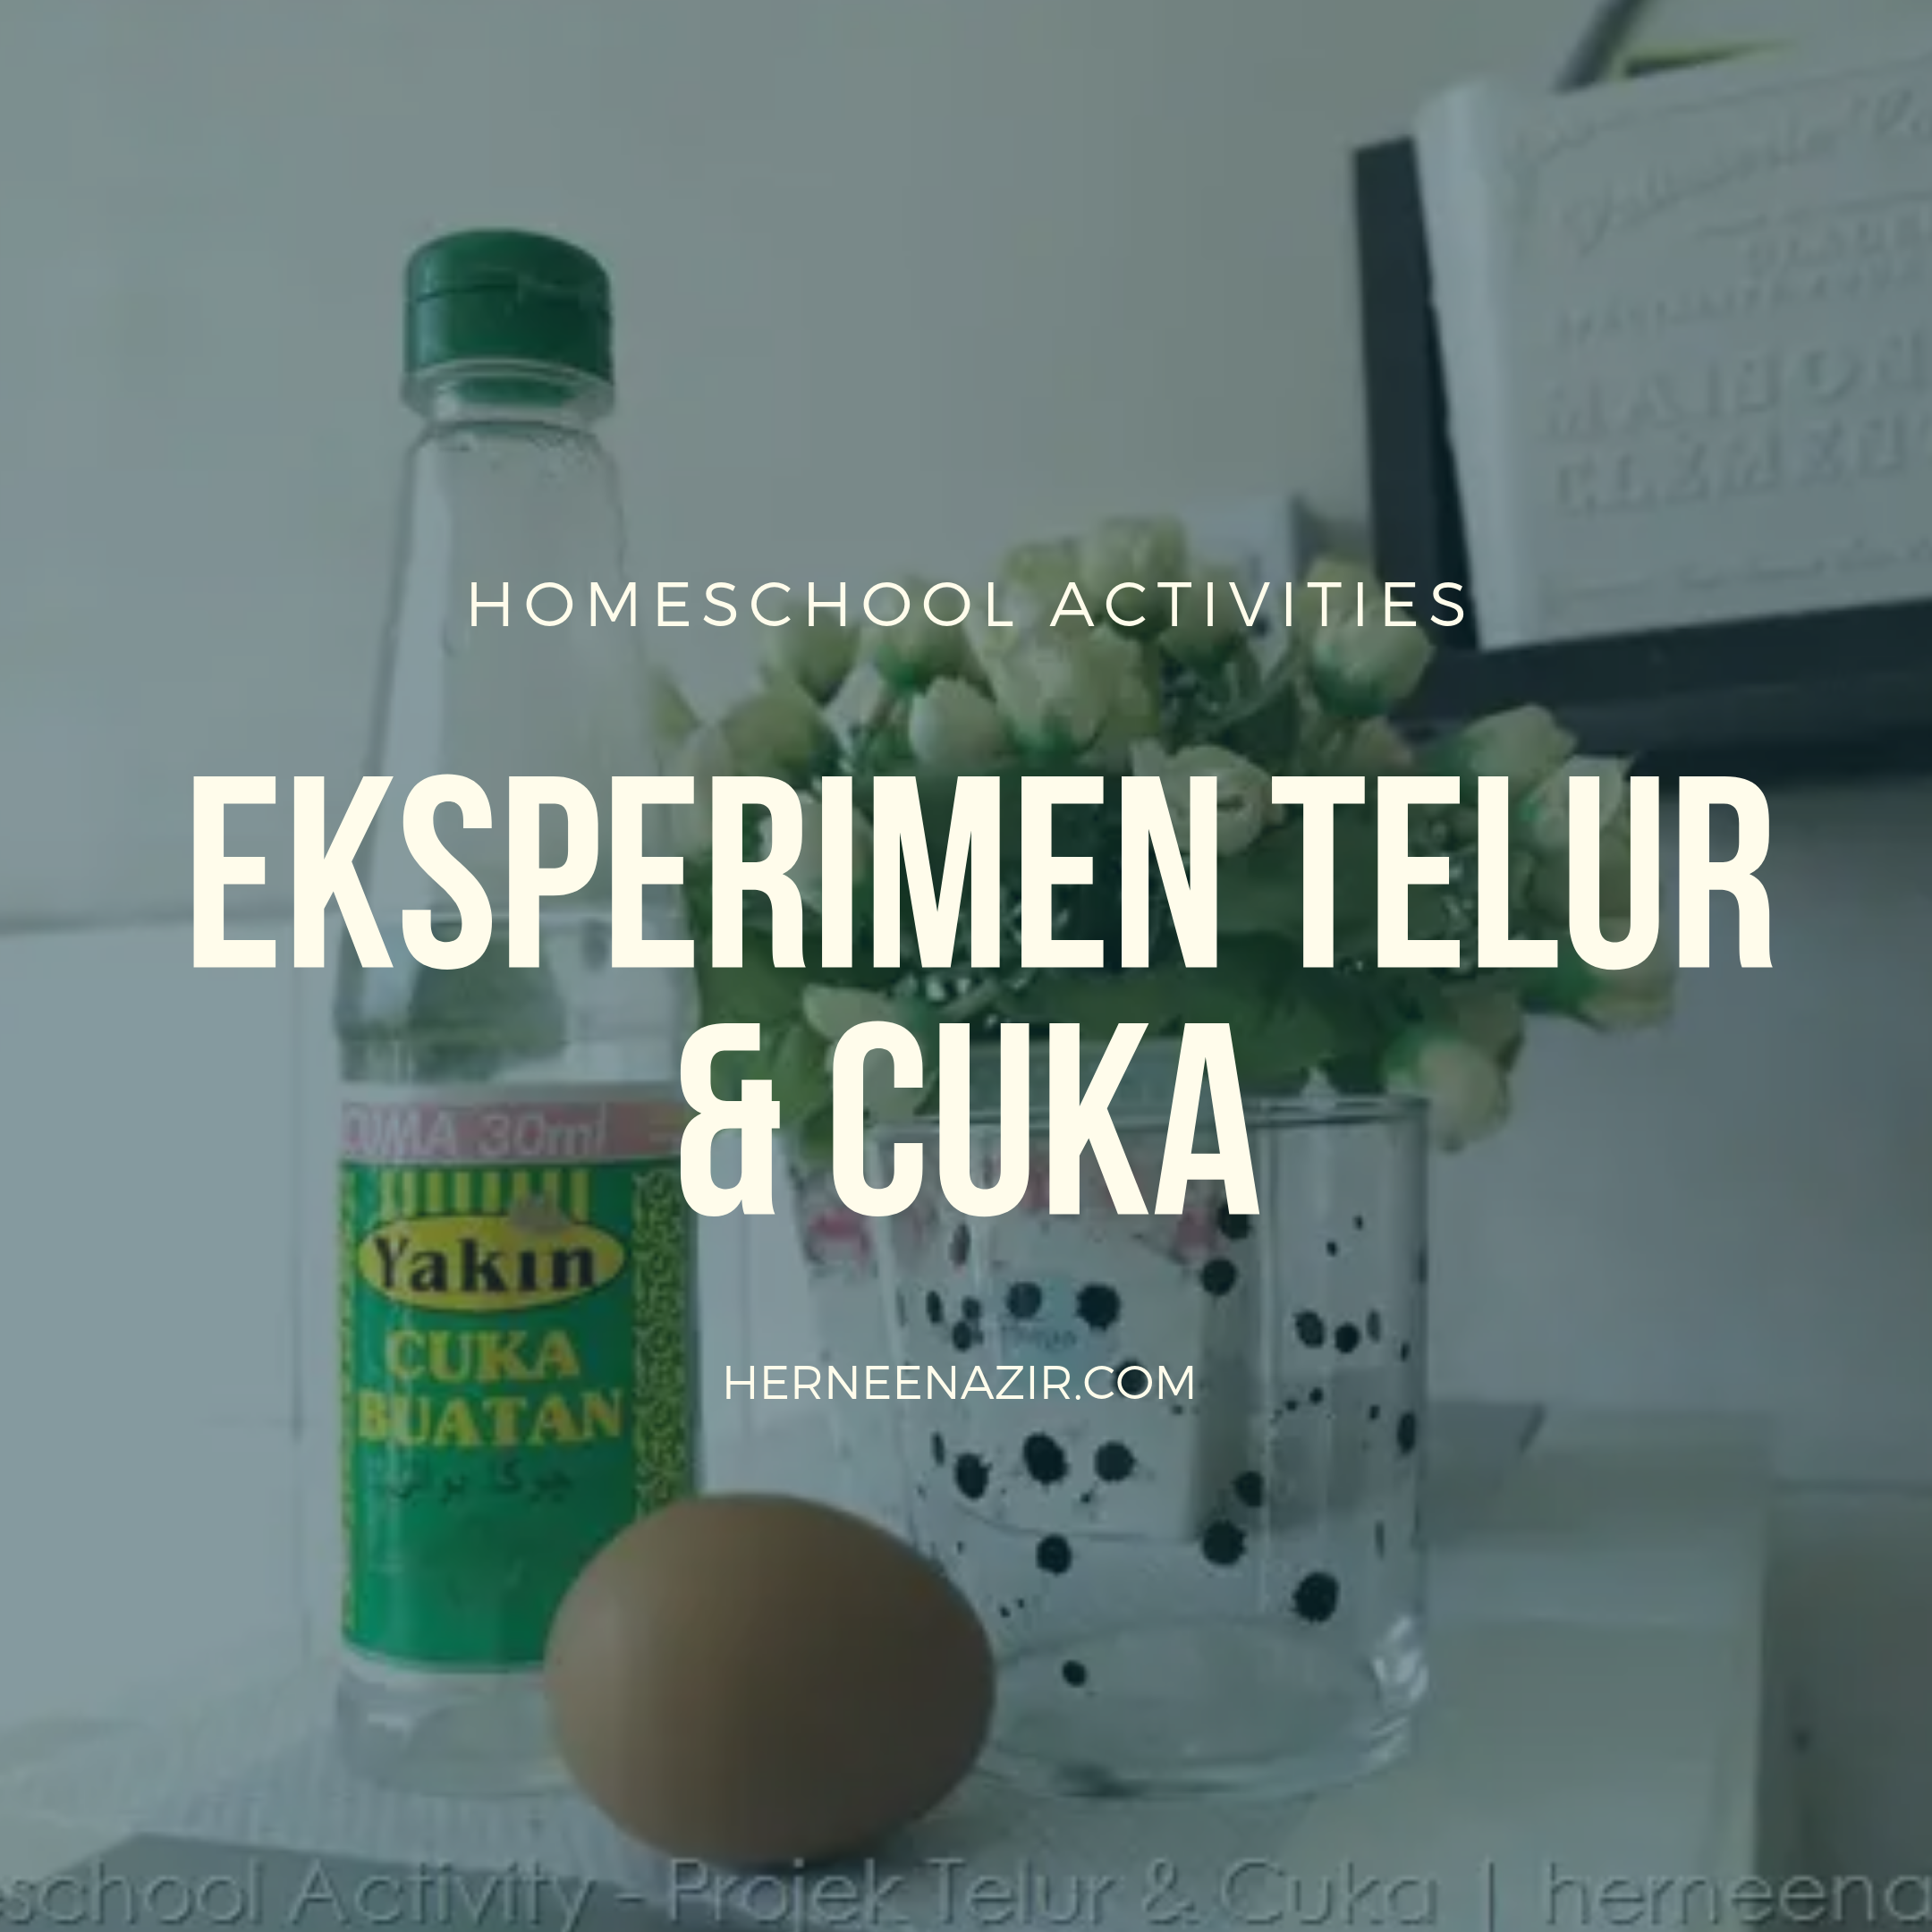 Homeschool Activities | Eksperimen Telur & Cuka